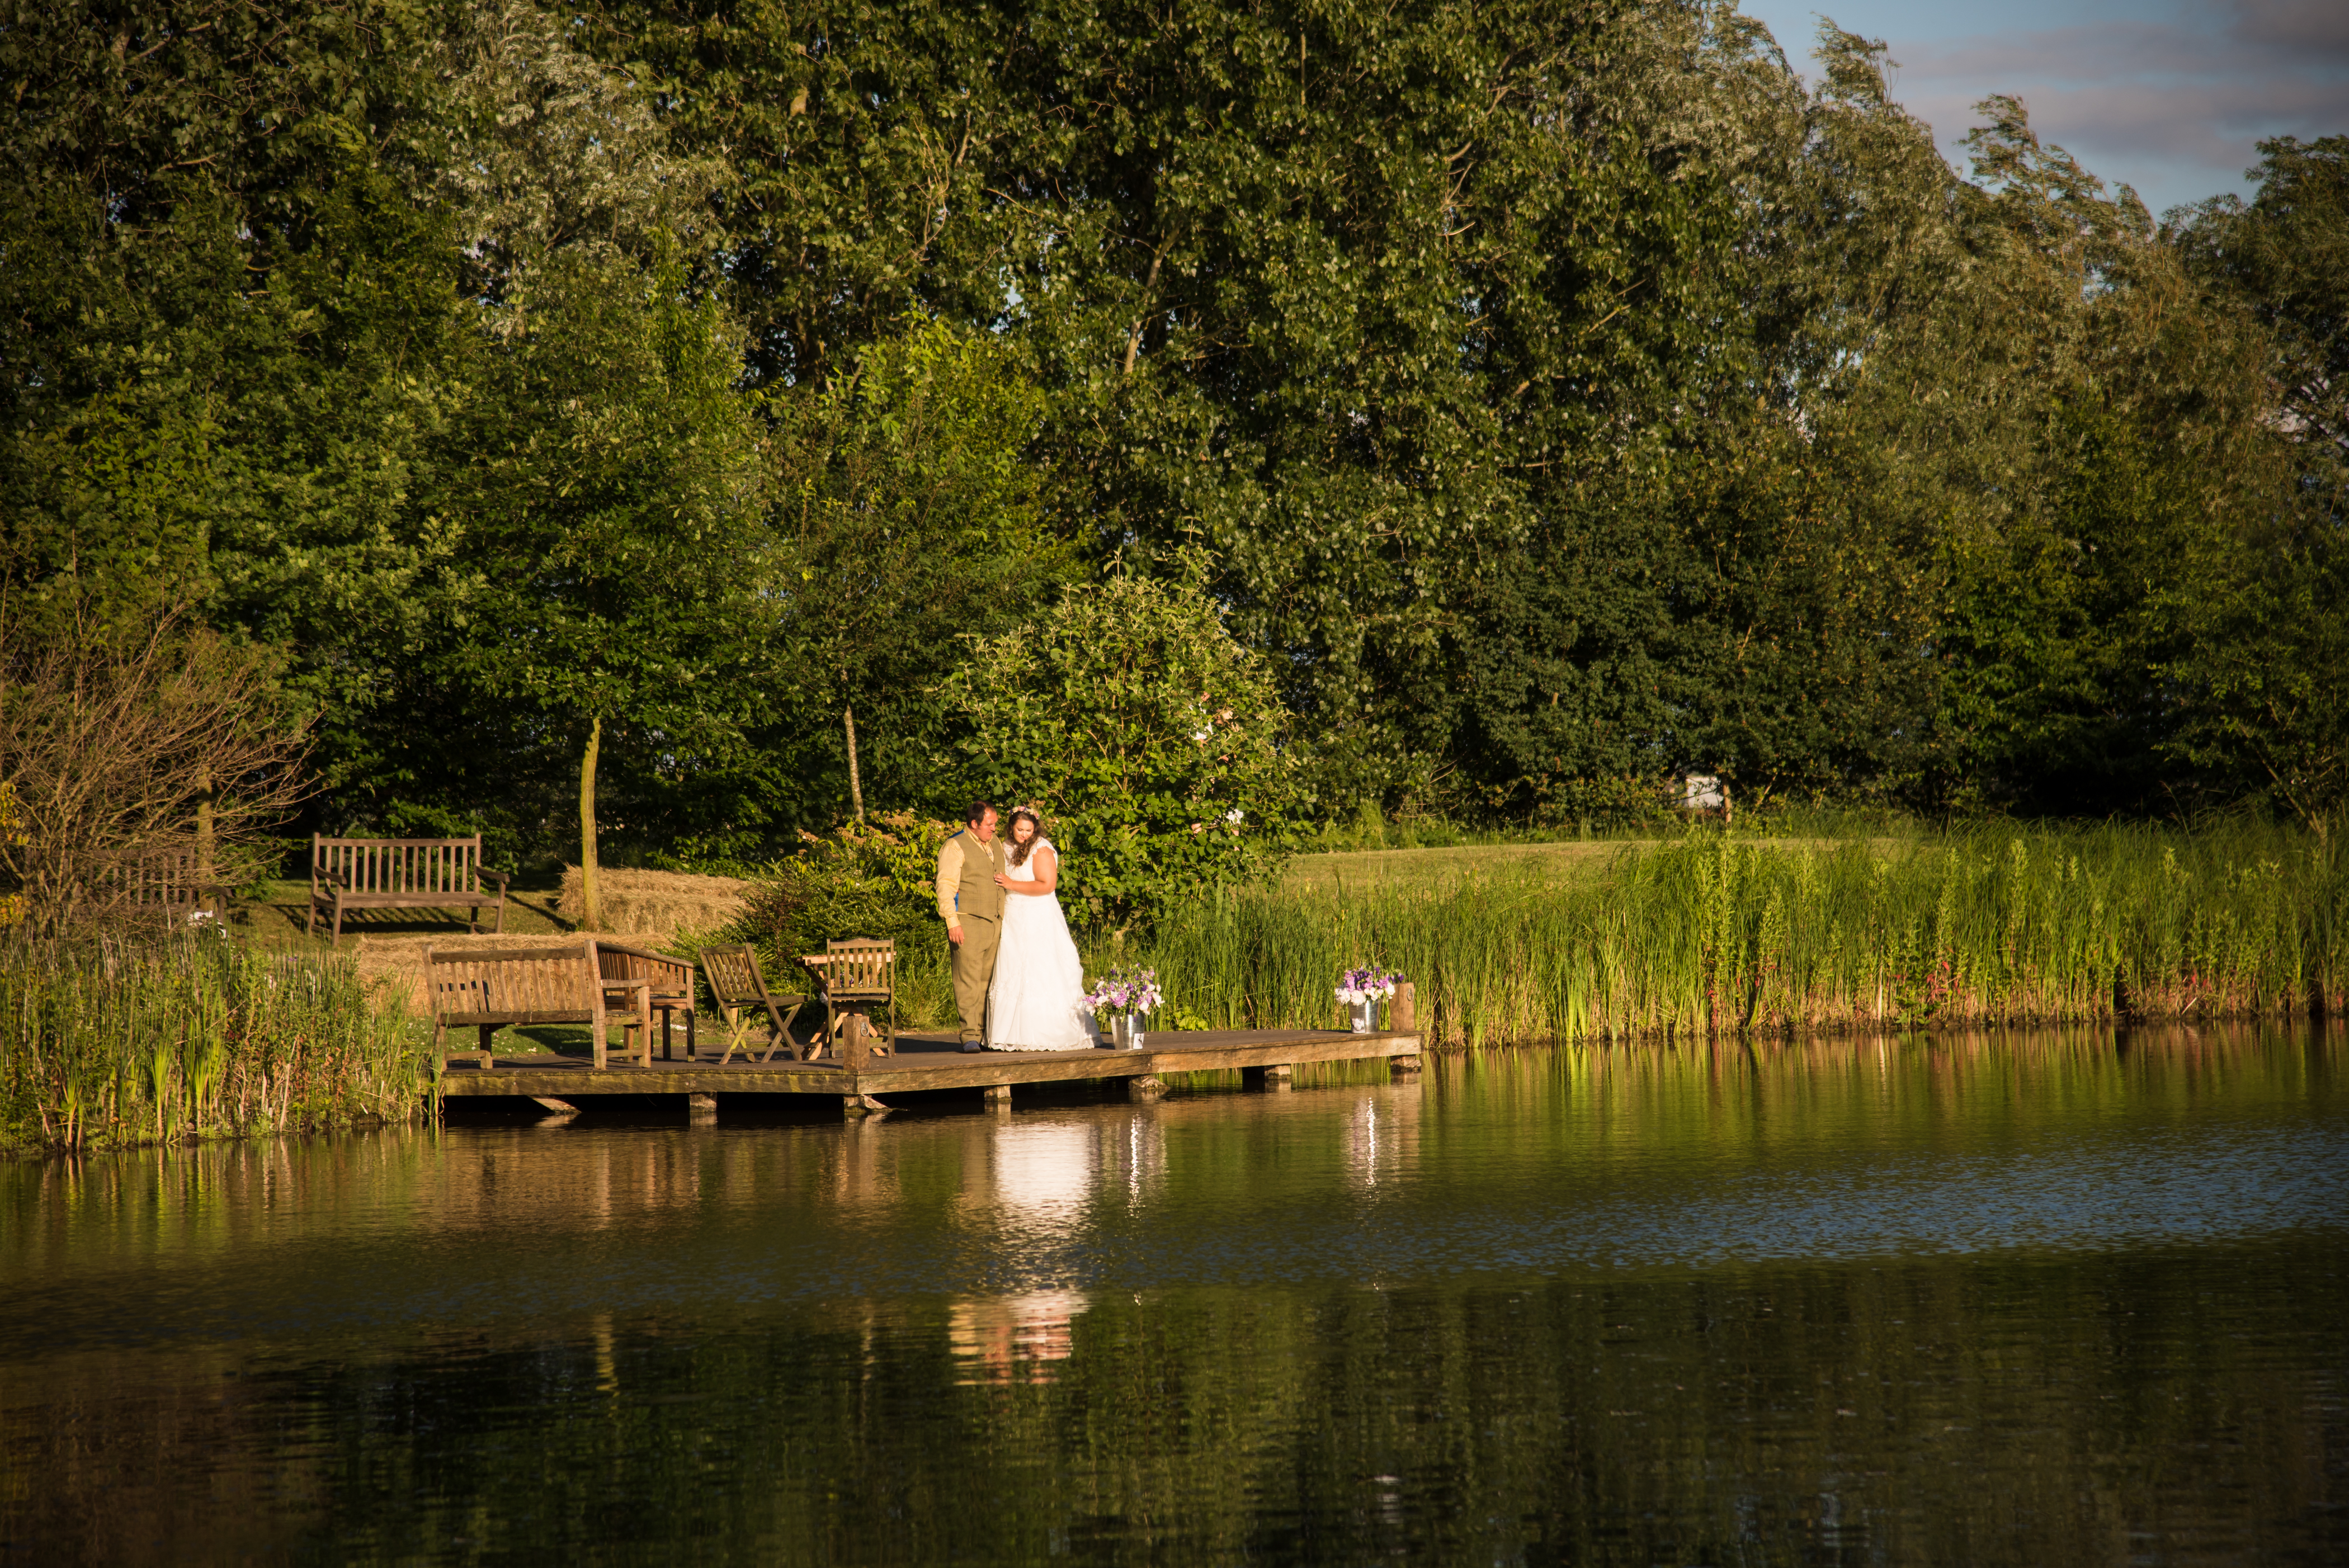 Bride & Groom by the Lake